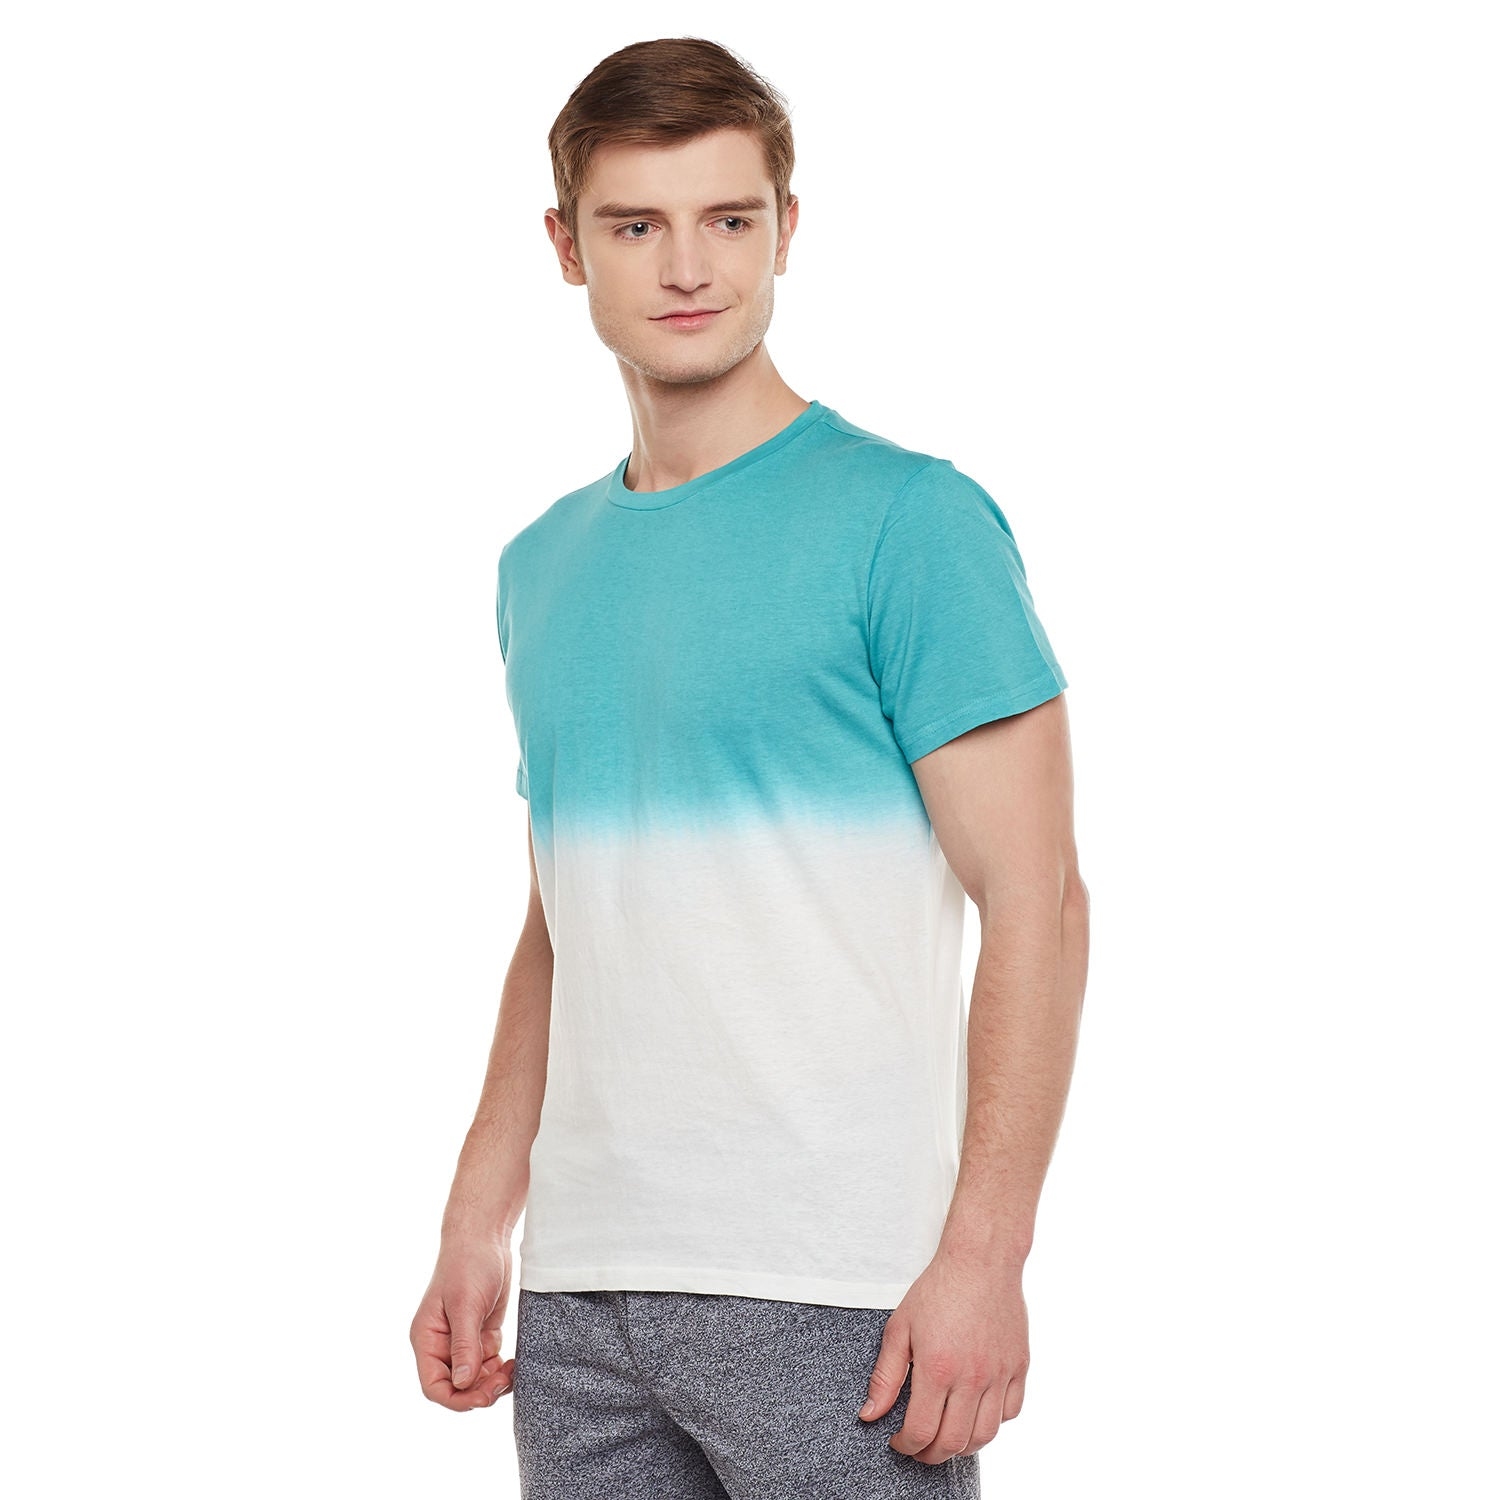 Atorse Mens Half Sleeve T-Shirt With Graphic Chest Print